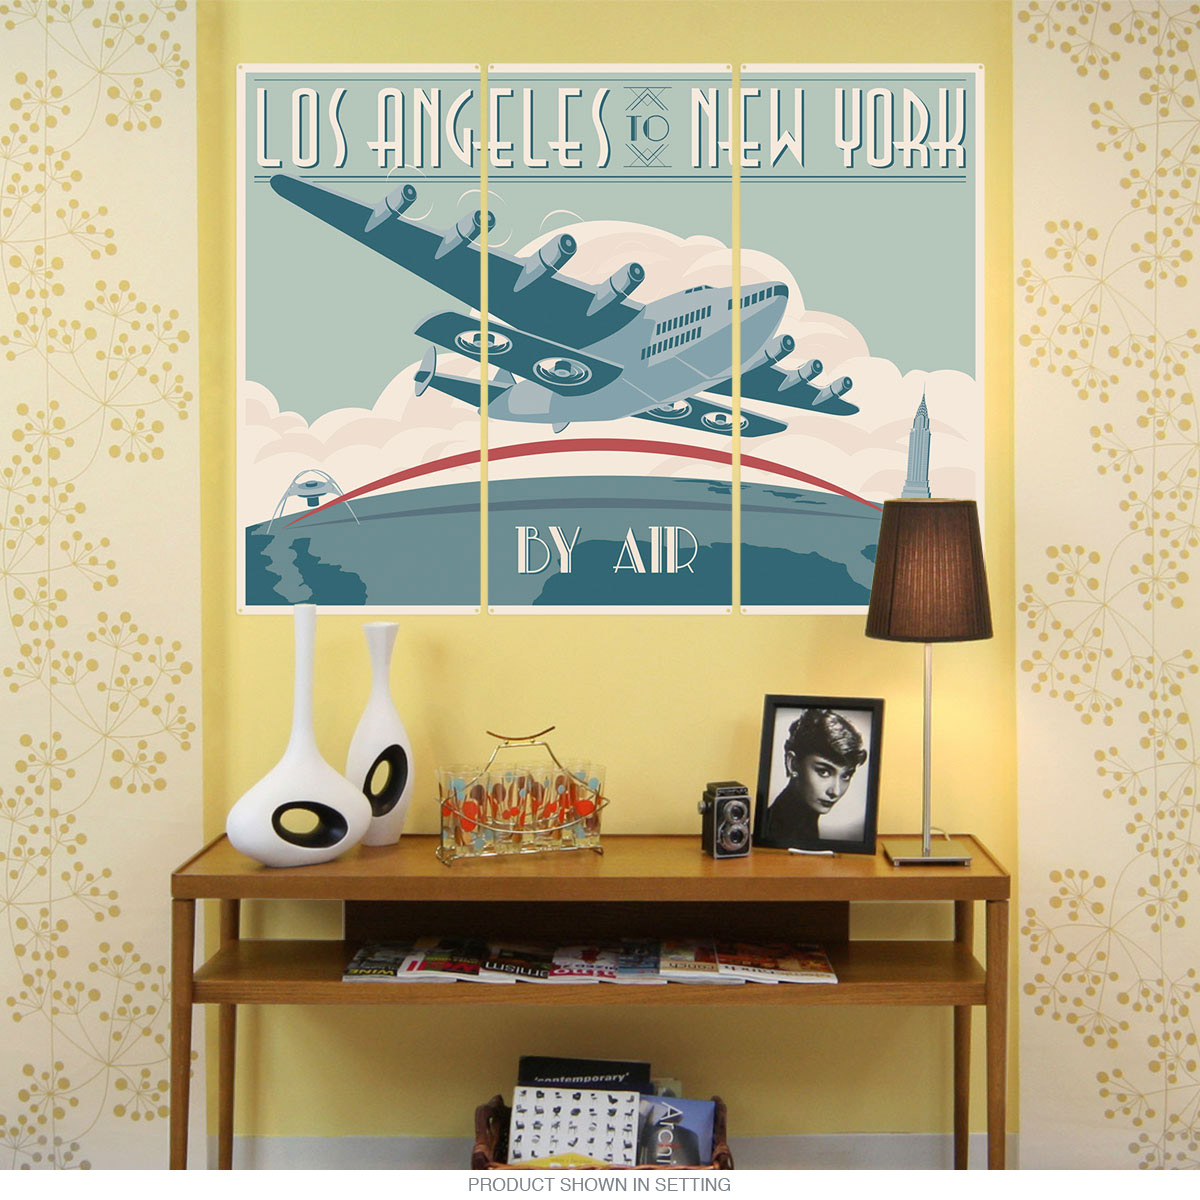 Los Angeles to New York By Air Triptych Metal Wall Art | Large Sign ...